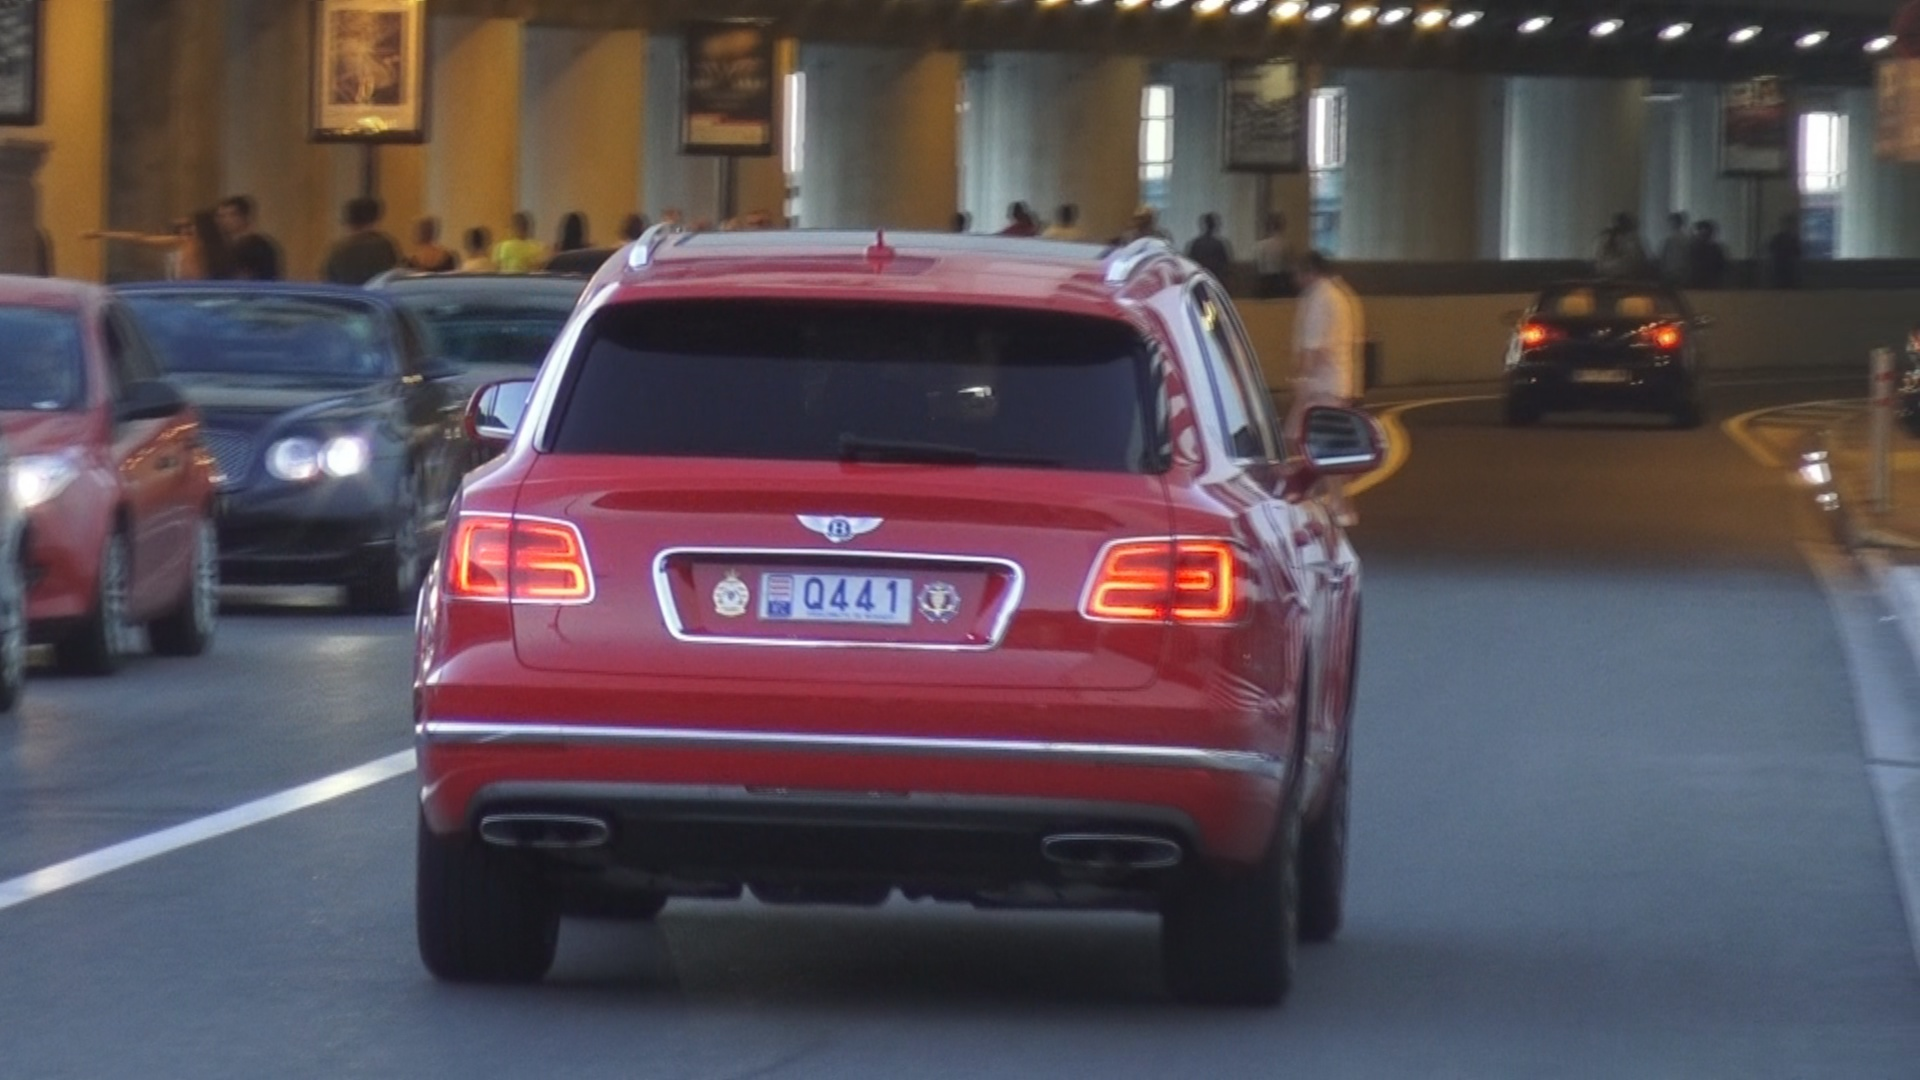 Bentley Bentayga - Q441 (MC)